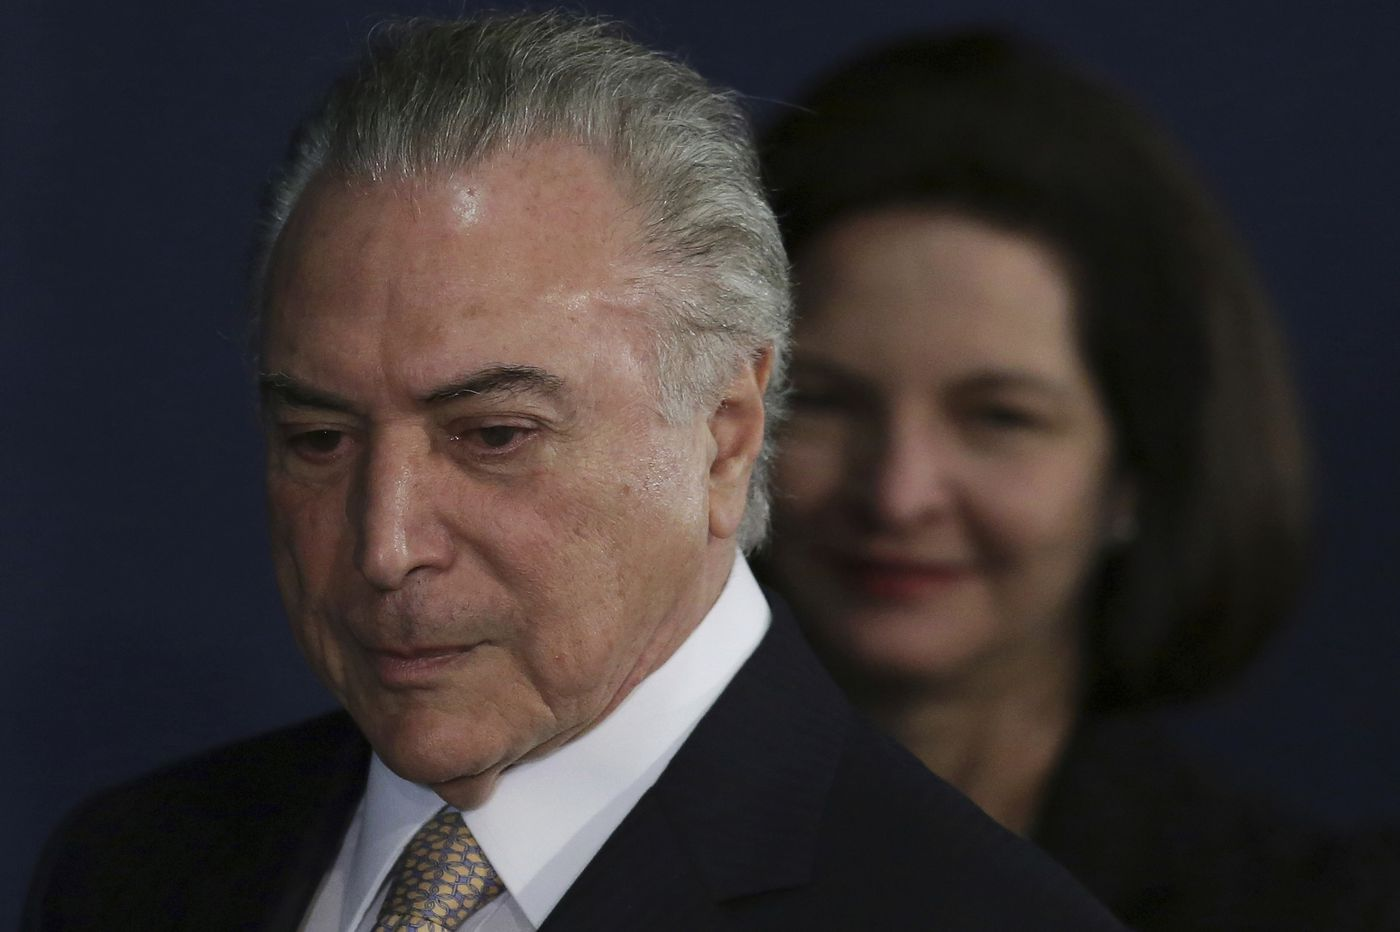 Brazil AG seeks corruption charges against President Temer